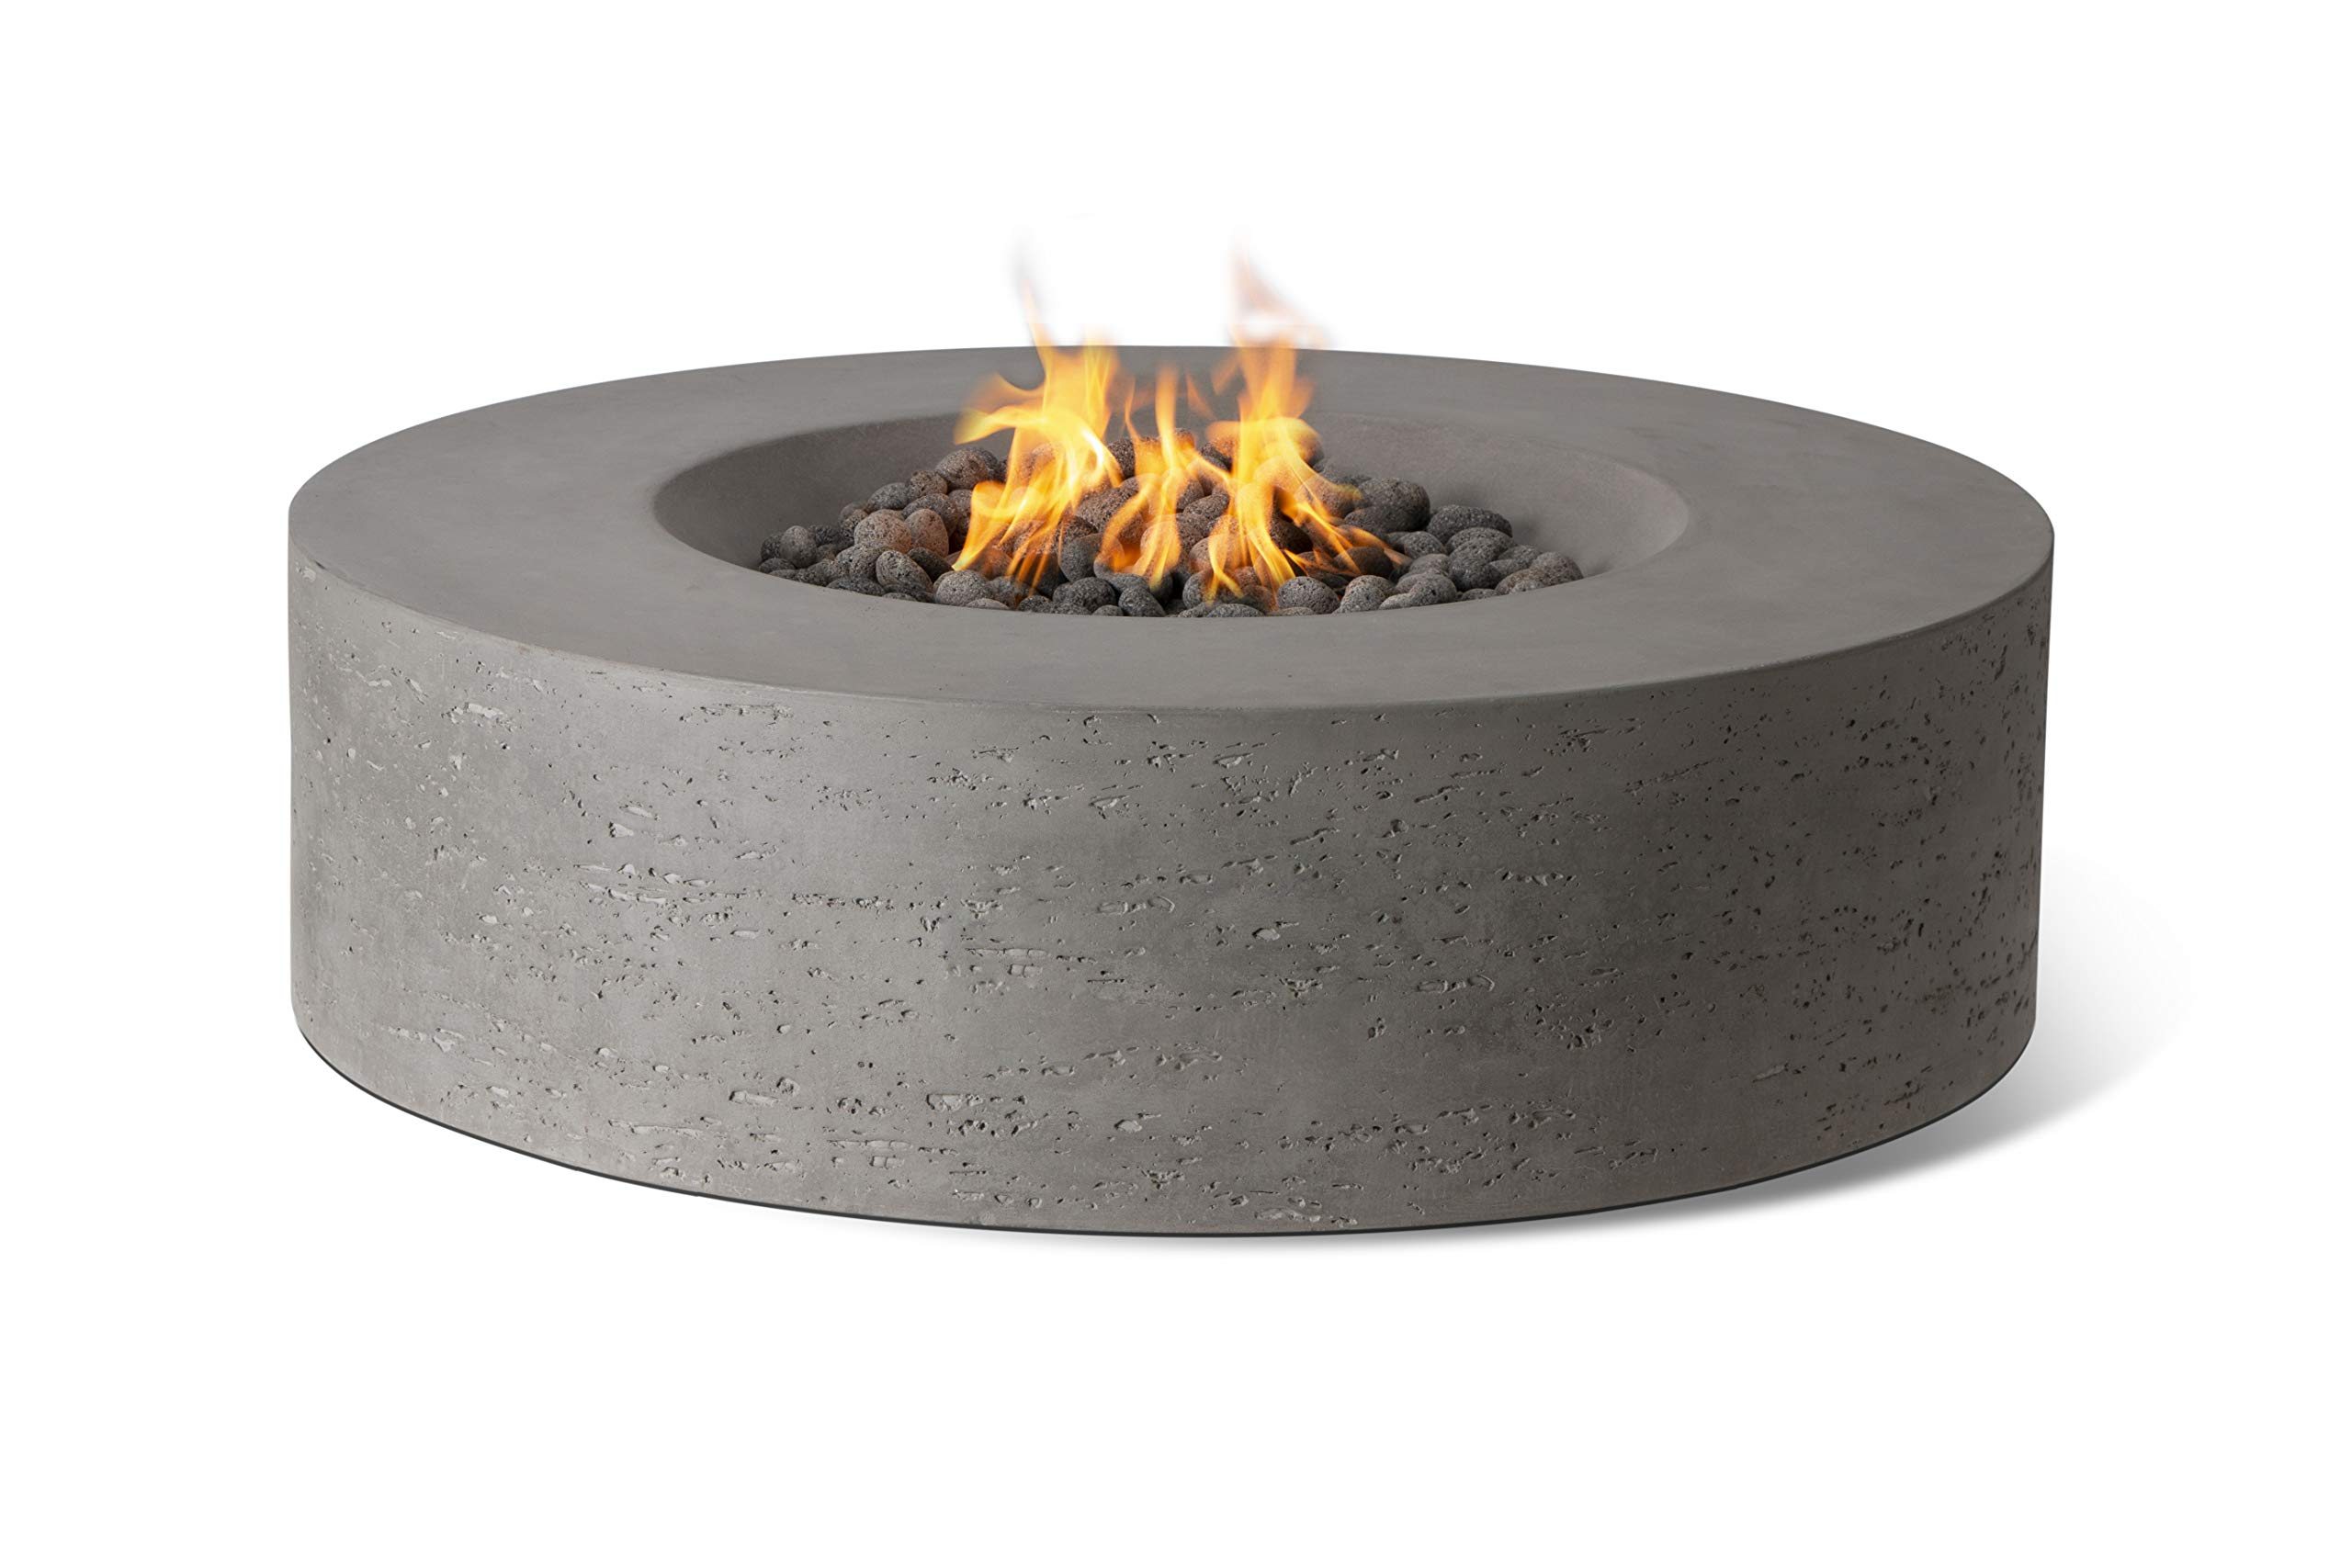 Pyromania Genesis Outdoor Fire Table Fire Pit Table Hand Crafted From High Performance Concrete 60 000 Btu Stainless Steel Burner With Electronic Ignition Propane Model Slate Color Buy Online In Aruba At Aruba Desertcart Com